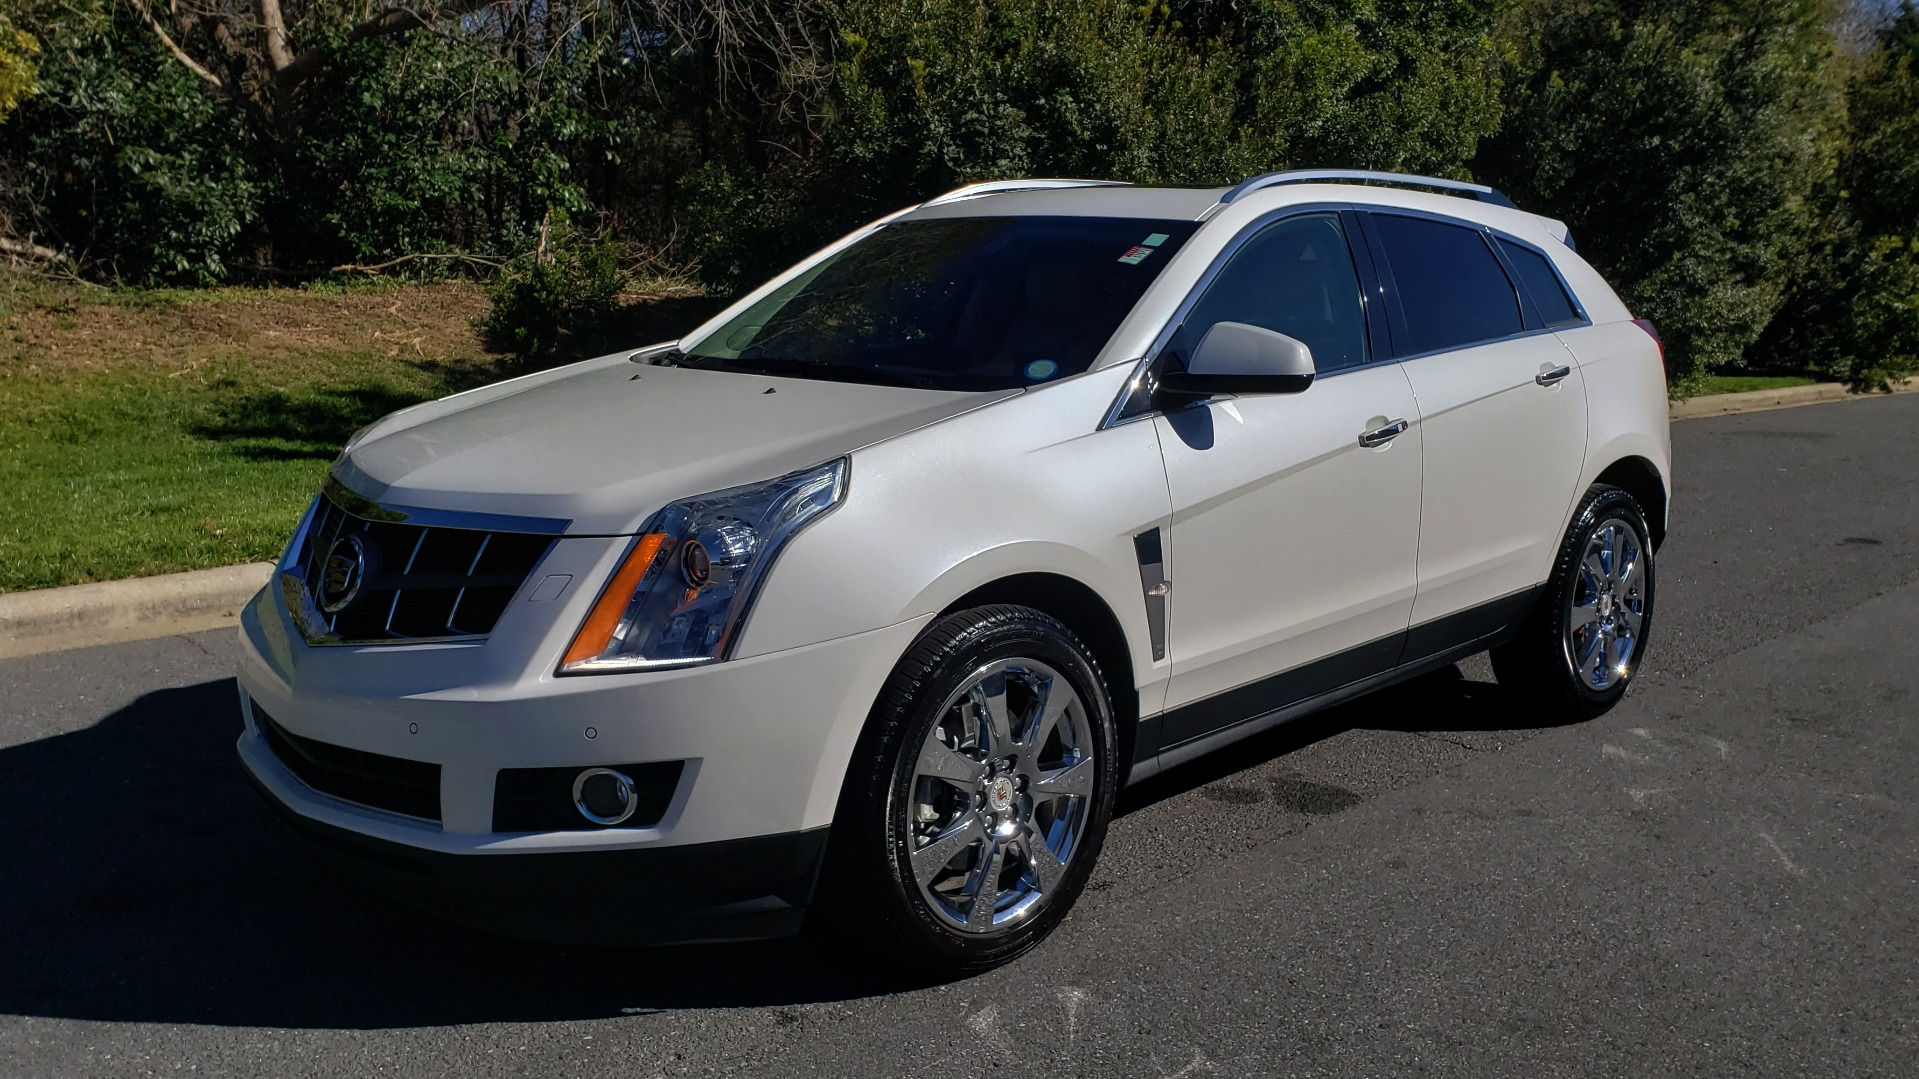 Used 2011 Cadillac SRX PERFORMANCE COLLECTION / ENT SYS / BOSE / REARVIEW for sale $15,999 at Formula Imports in Charlotte NC 28227 1